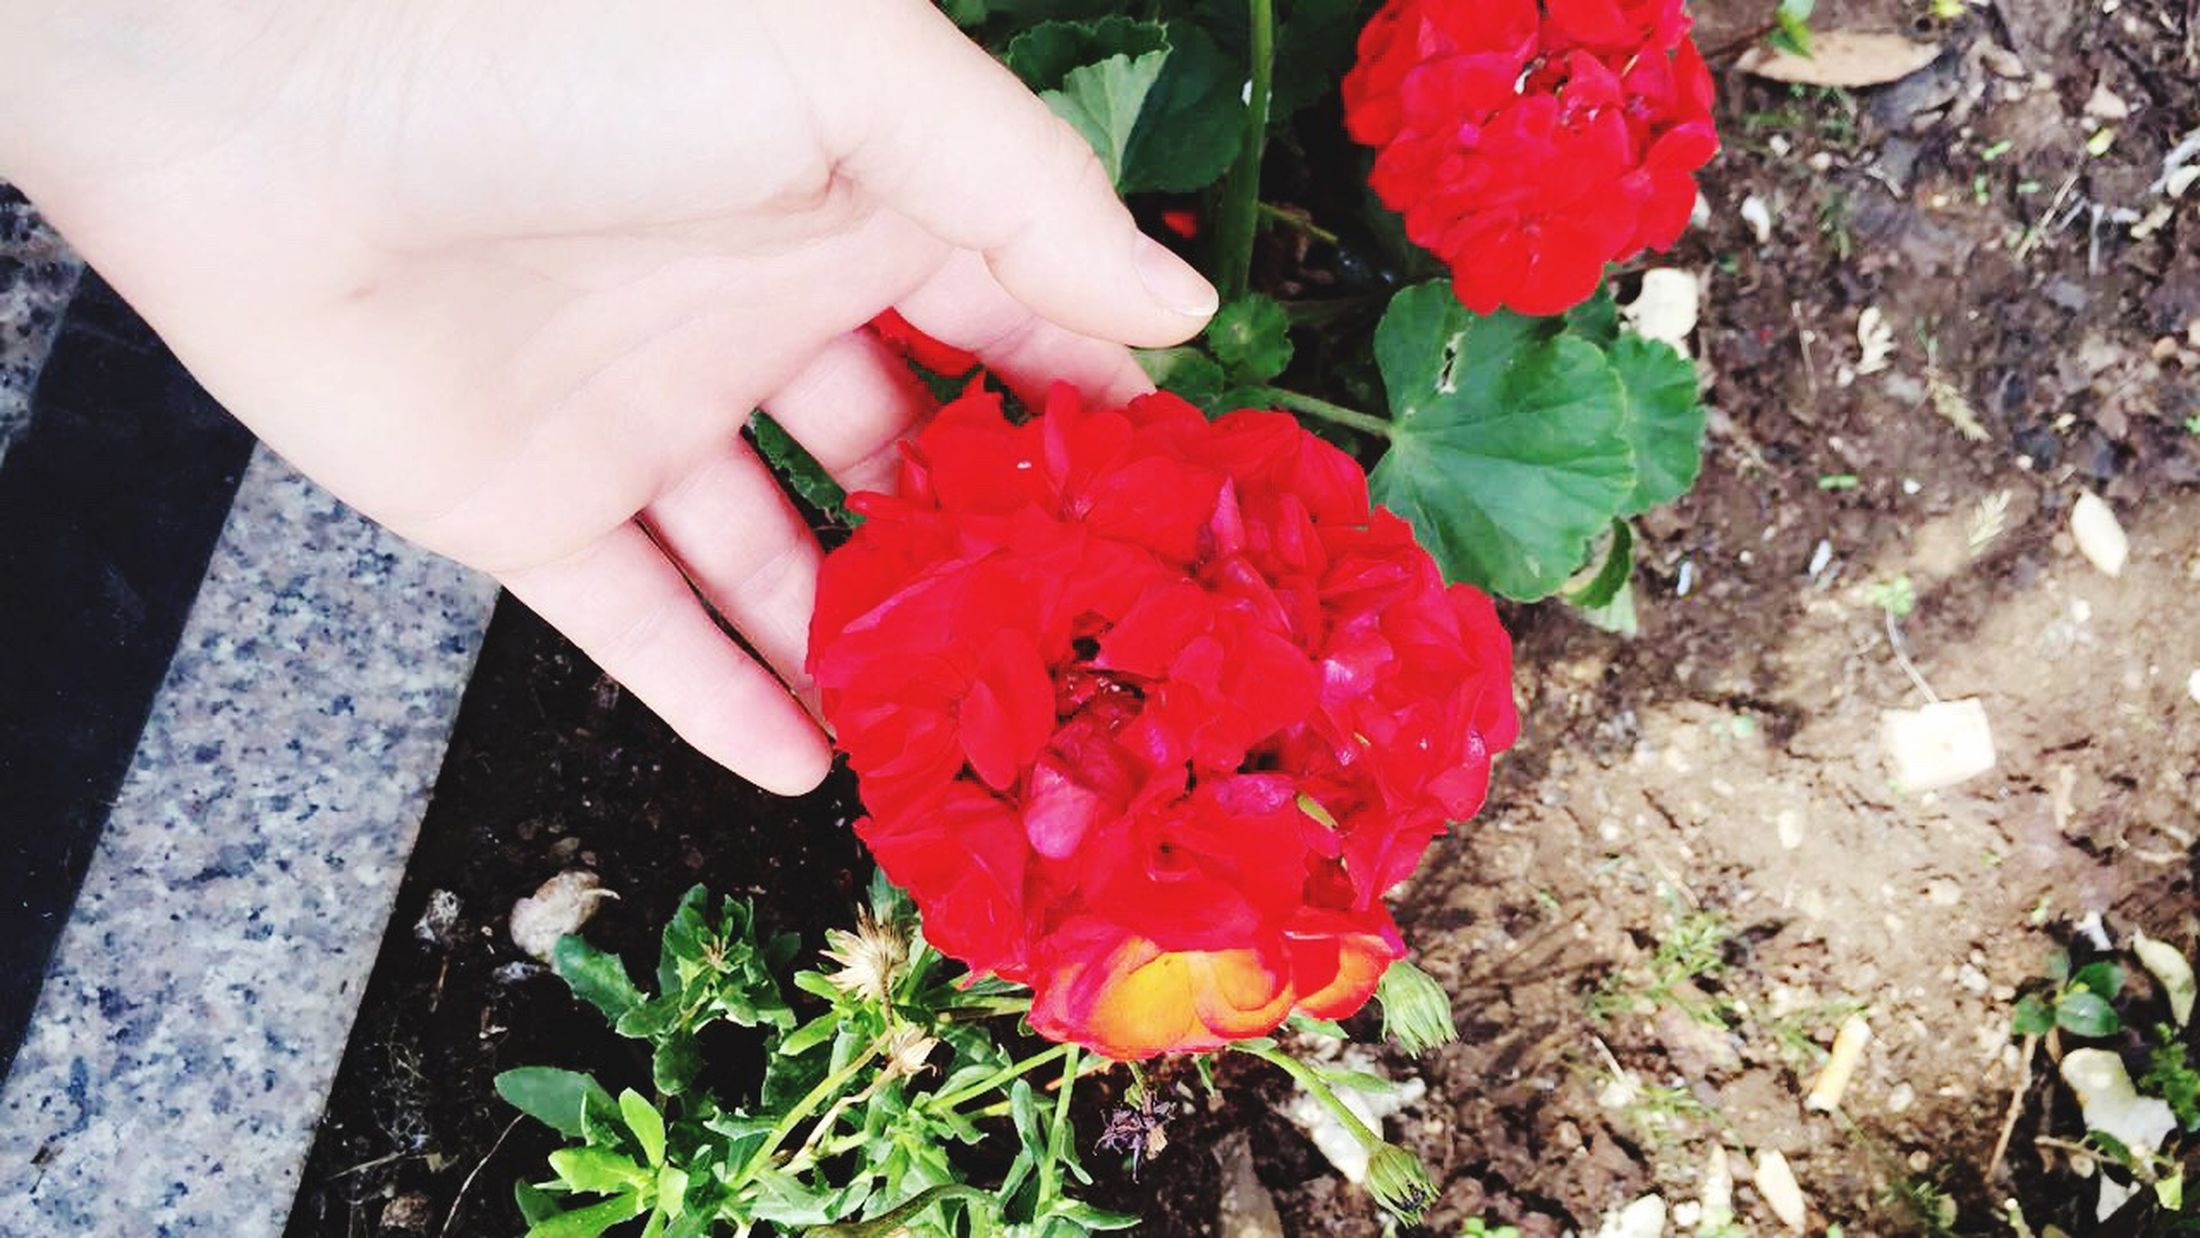 Architecture Human Hand Human Body Part High Angle View One Person Leaf Holding Real People Flower Freshness Outdoors Nature Plant Red Petal Lifestyles Growth Day Fragility Close-up Beauty In Nature Nature